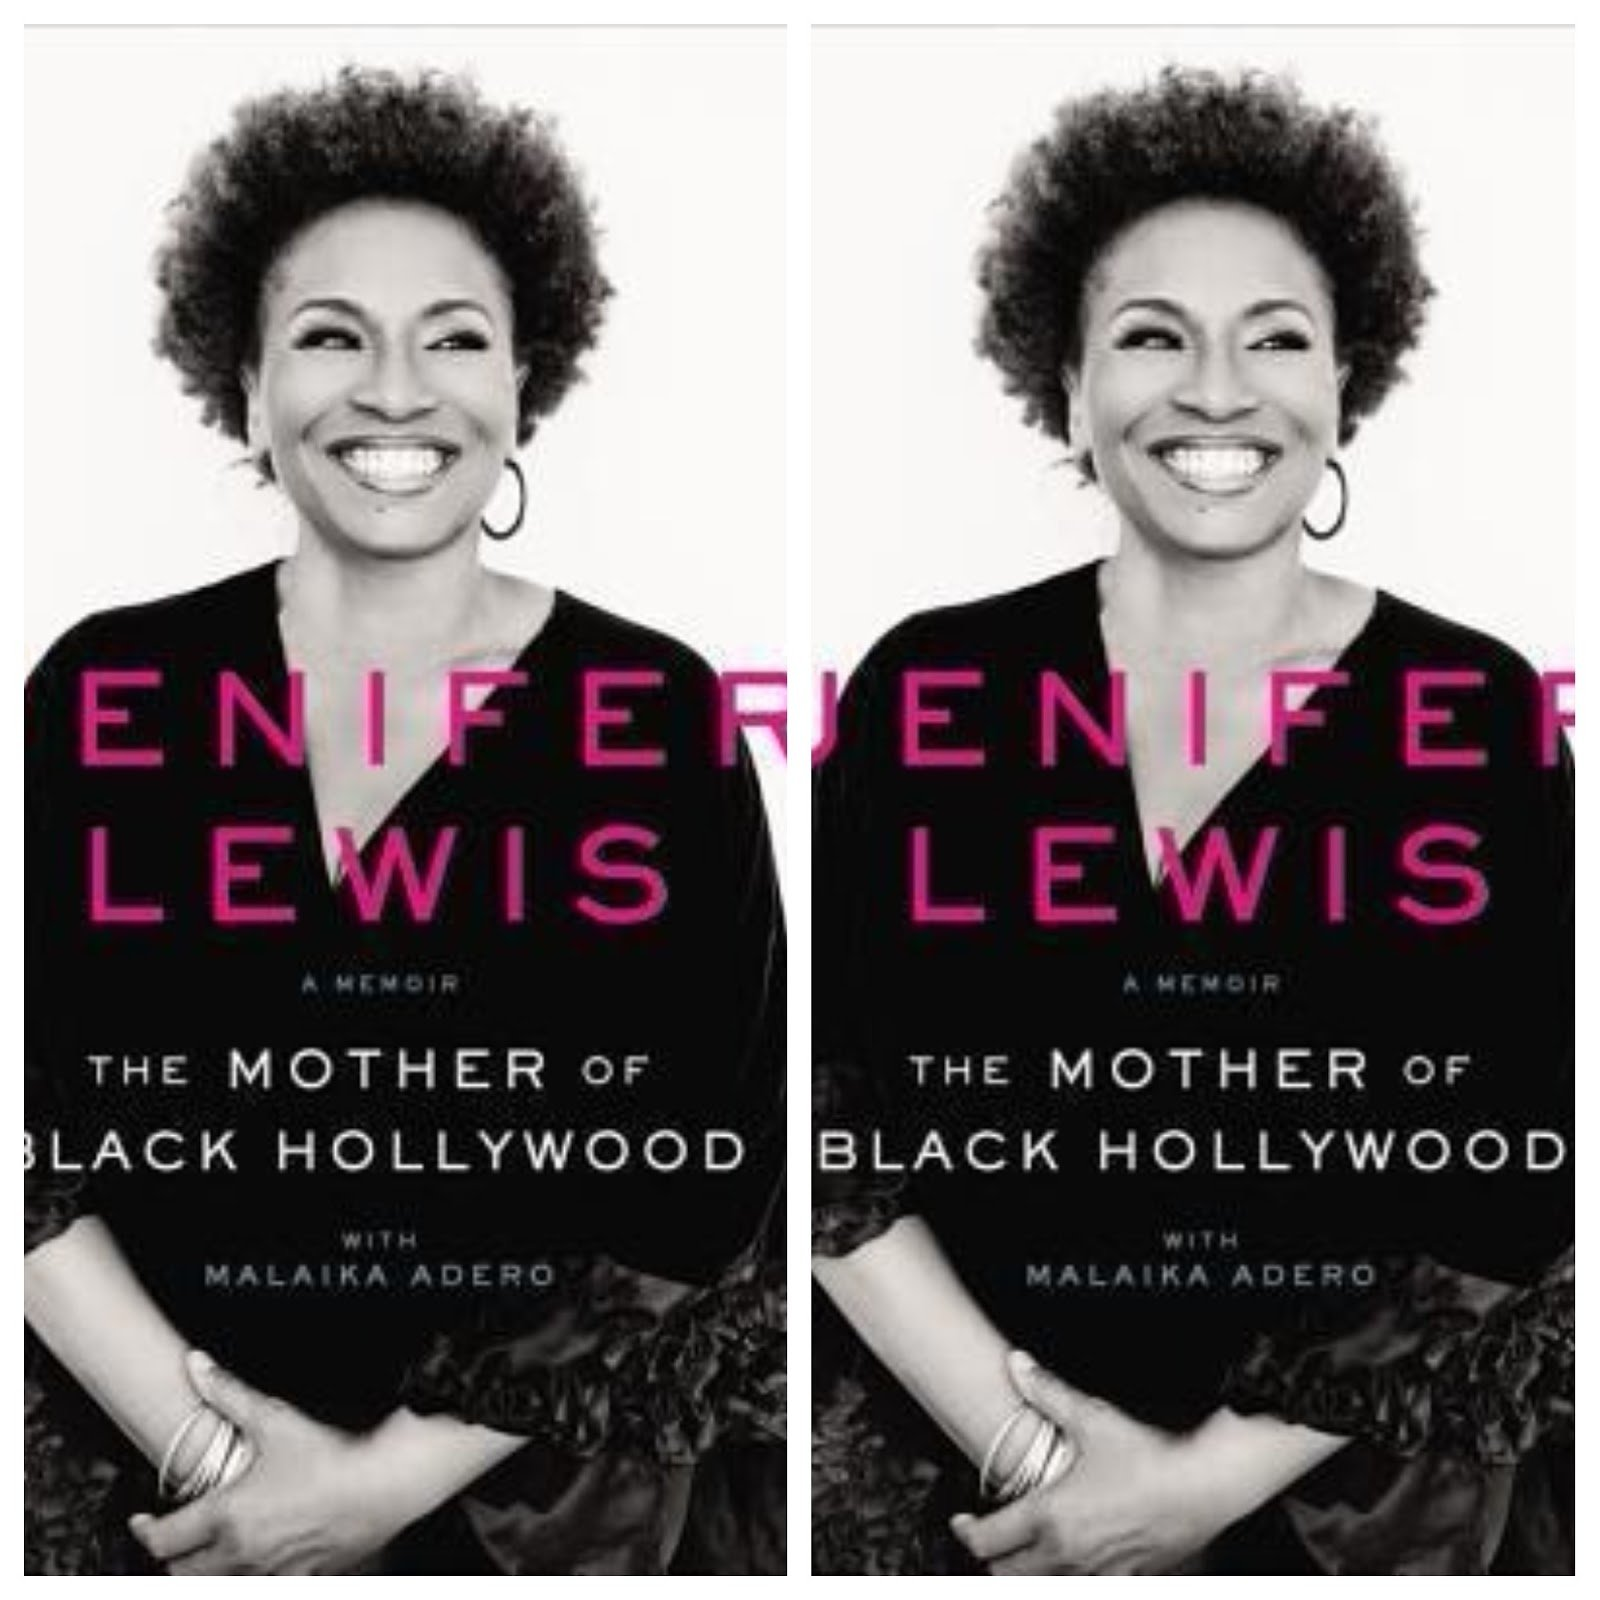 7 Lessons We Can Learn From Jenifer Lewis' Memoir: The Mother of Black Hollywood